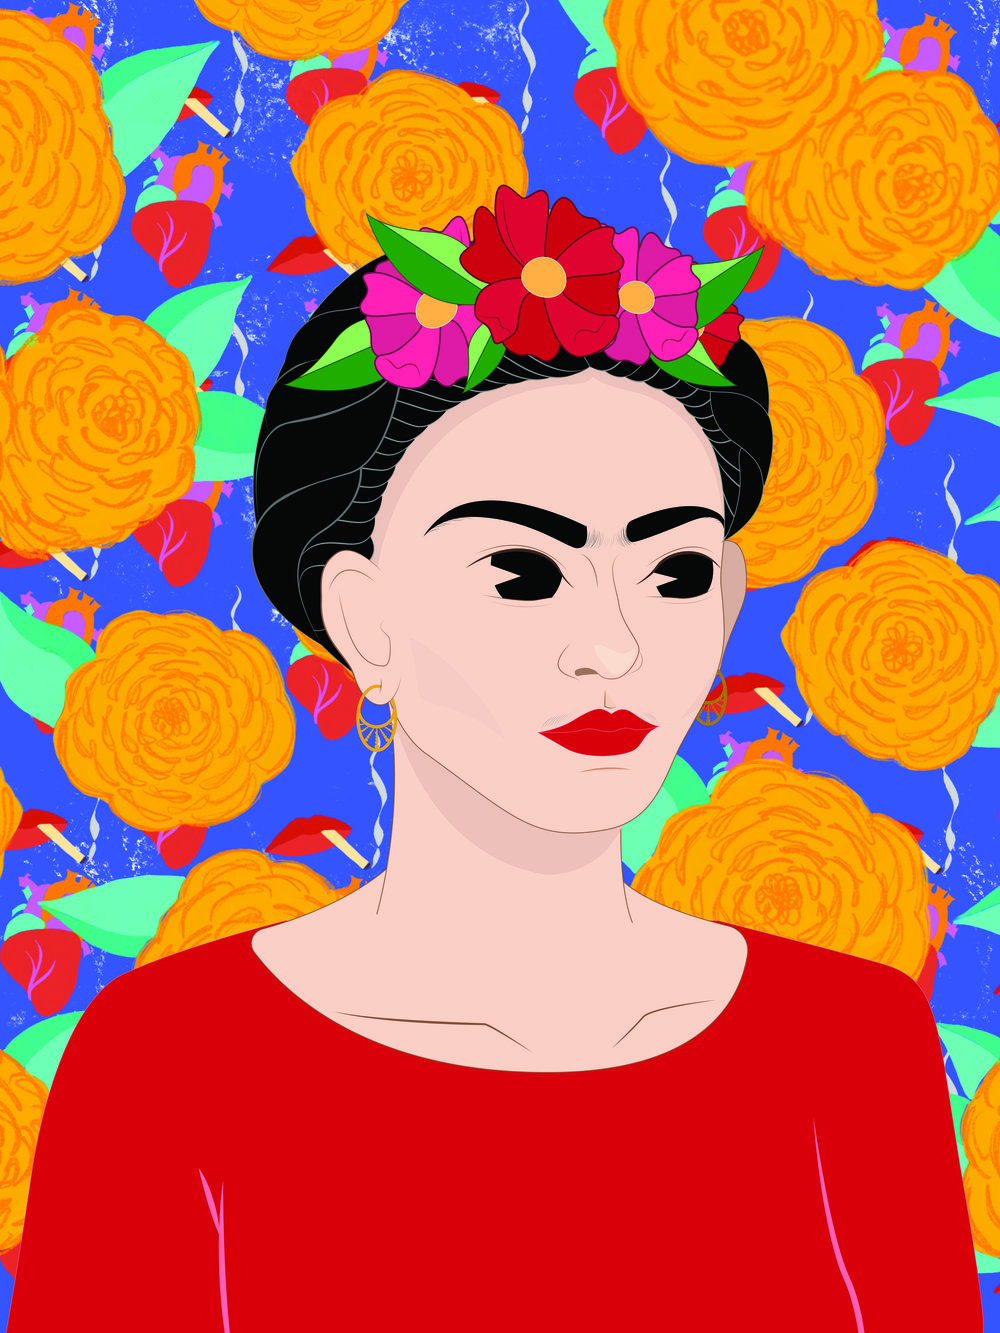 Portrait of Frida Kahlo - a collaboration between Ash Menardo and Jess Couture